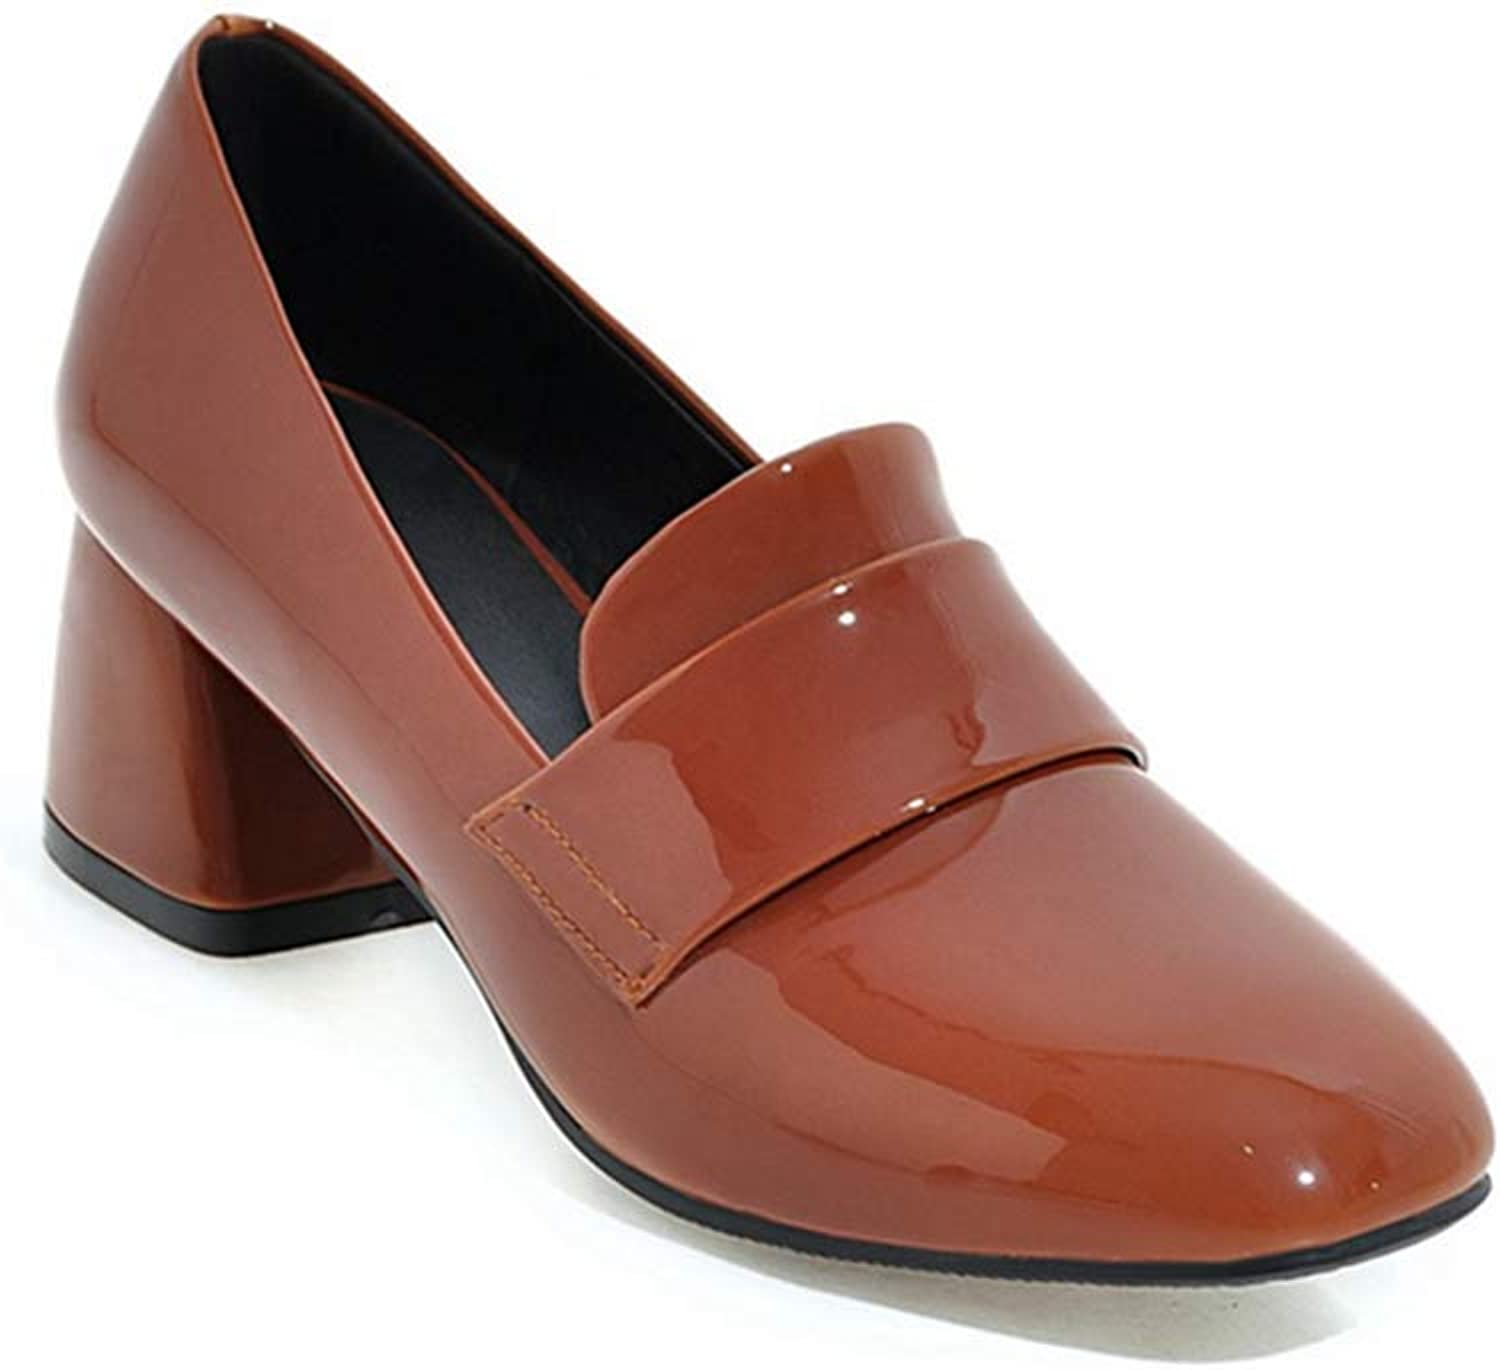 Beautiful - Fashion Women's Square Toe Penny Loafer Pump Patent Leather Platform Mid Heel Dress Oxfords Pumps shoes